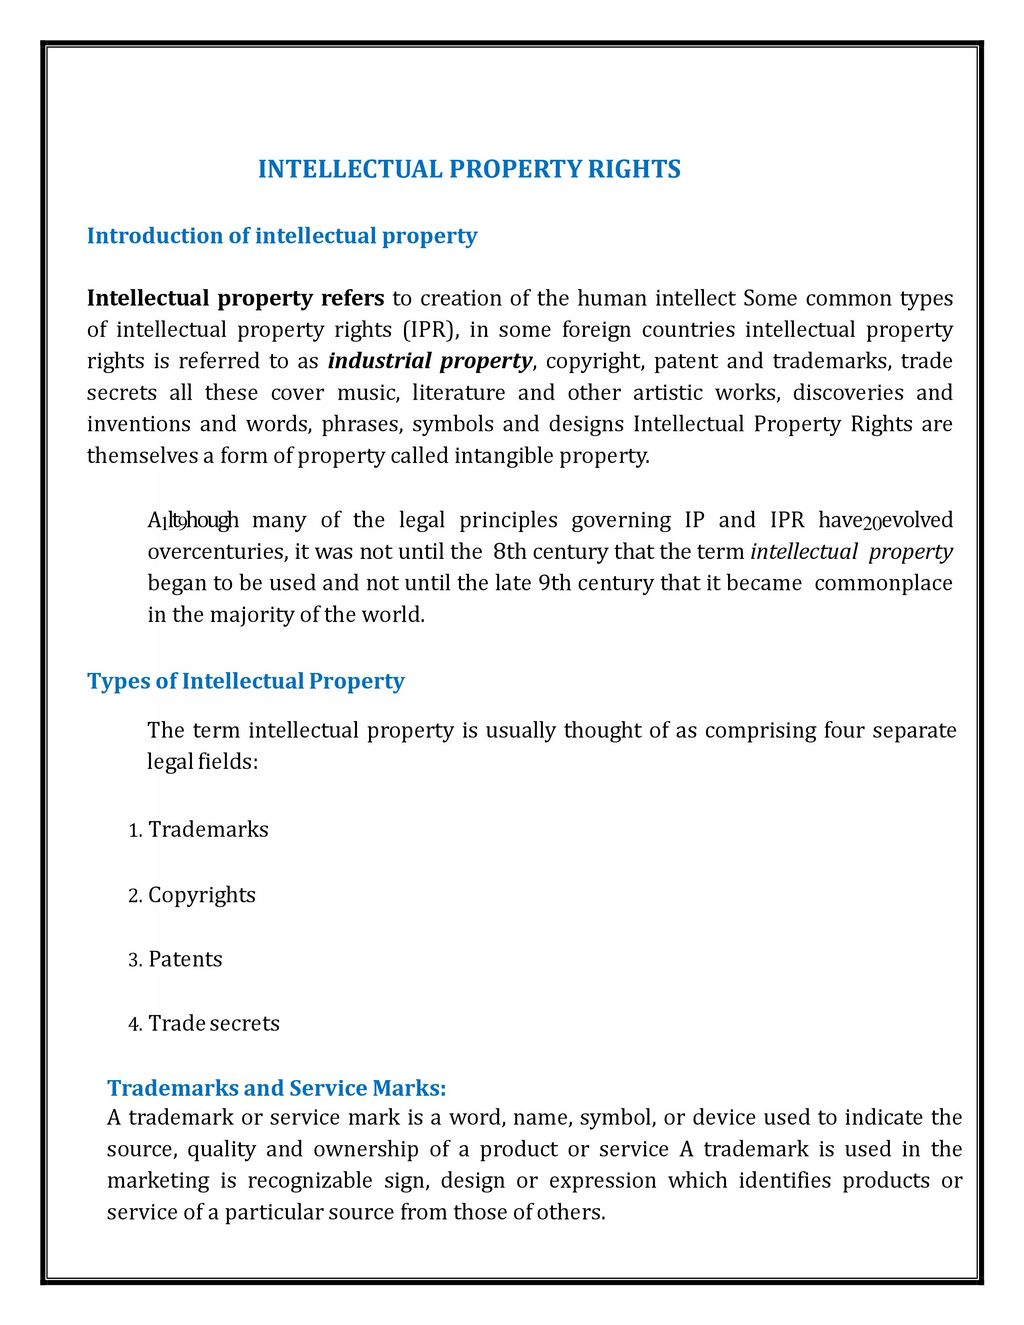 Intellectual property rights lecture notes ppt download 2 intellectual property rights biocorpaavc Images